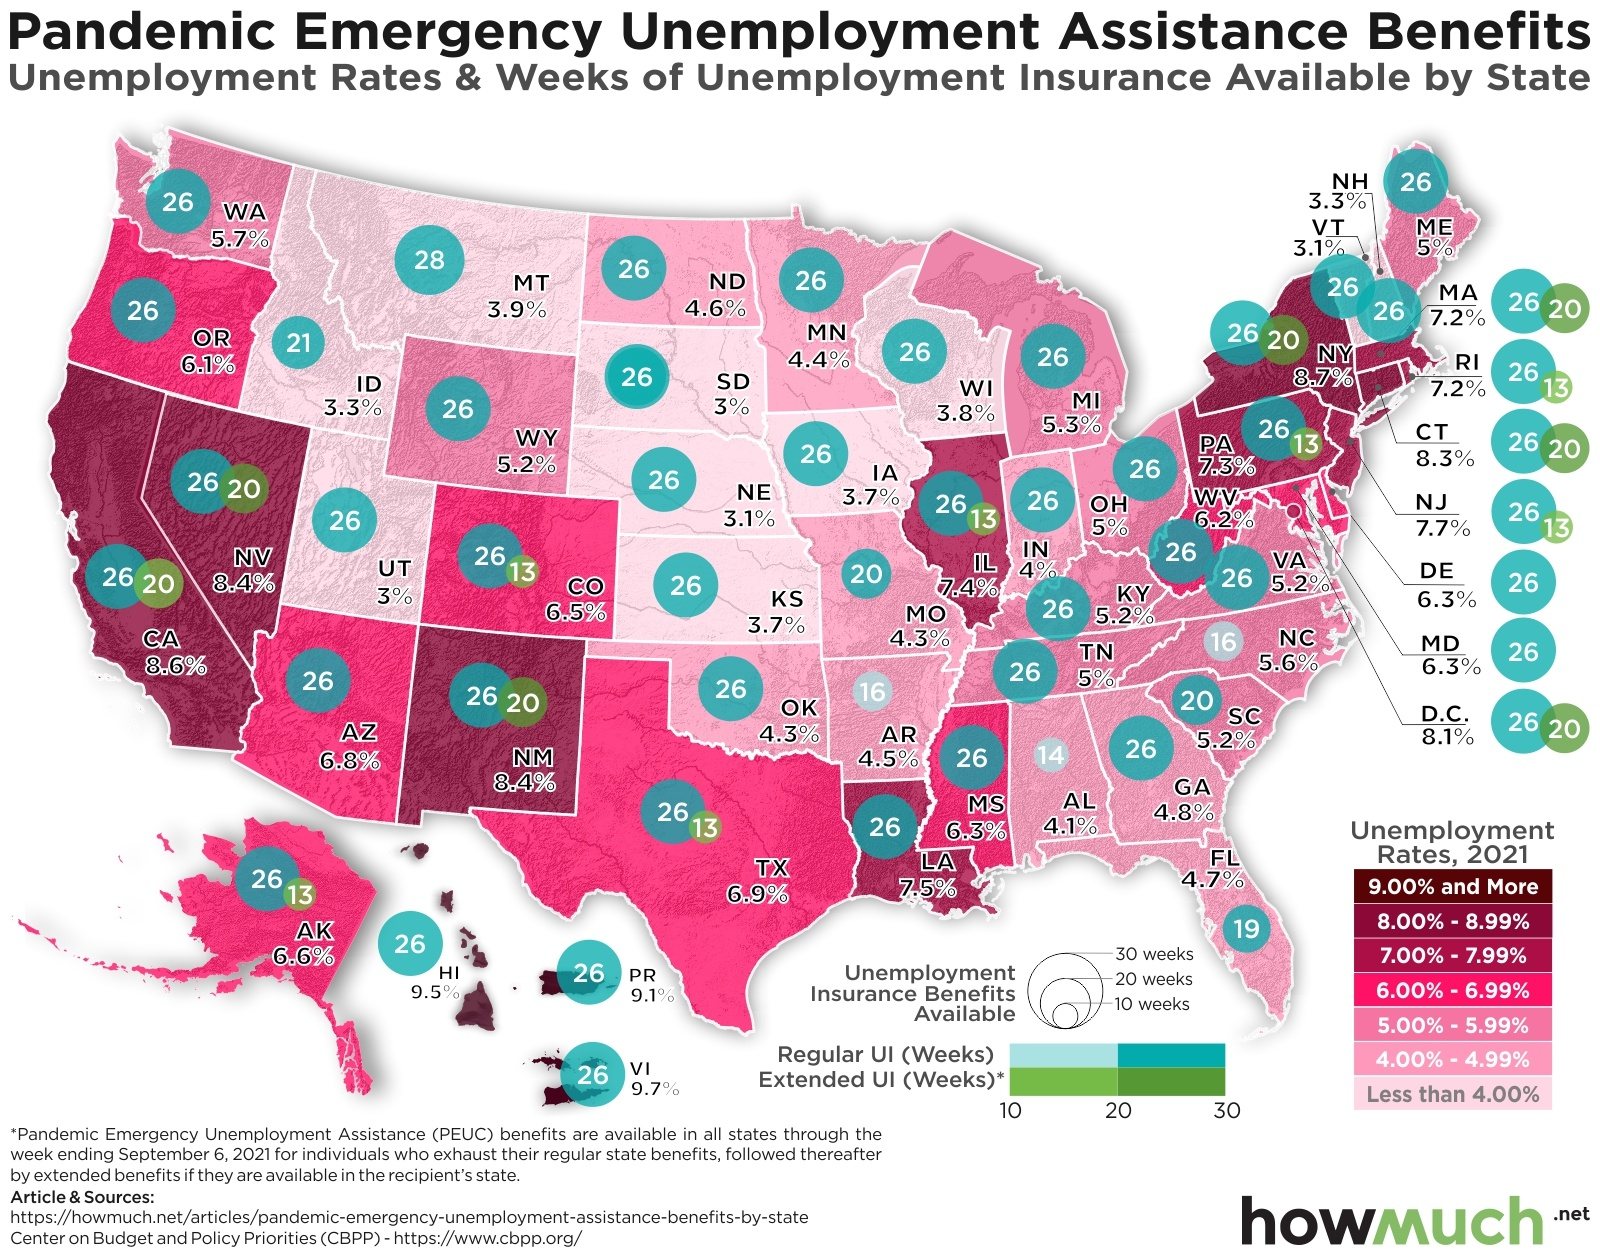 Unemployment Rates and Weeks of Unemployment Insurance